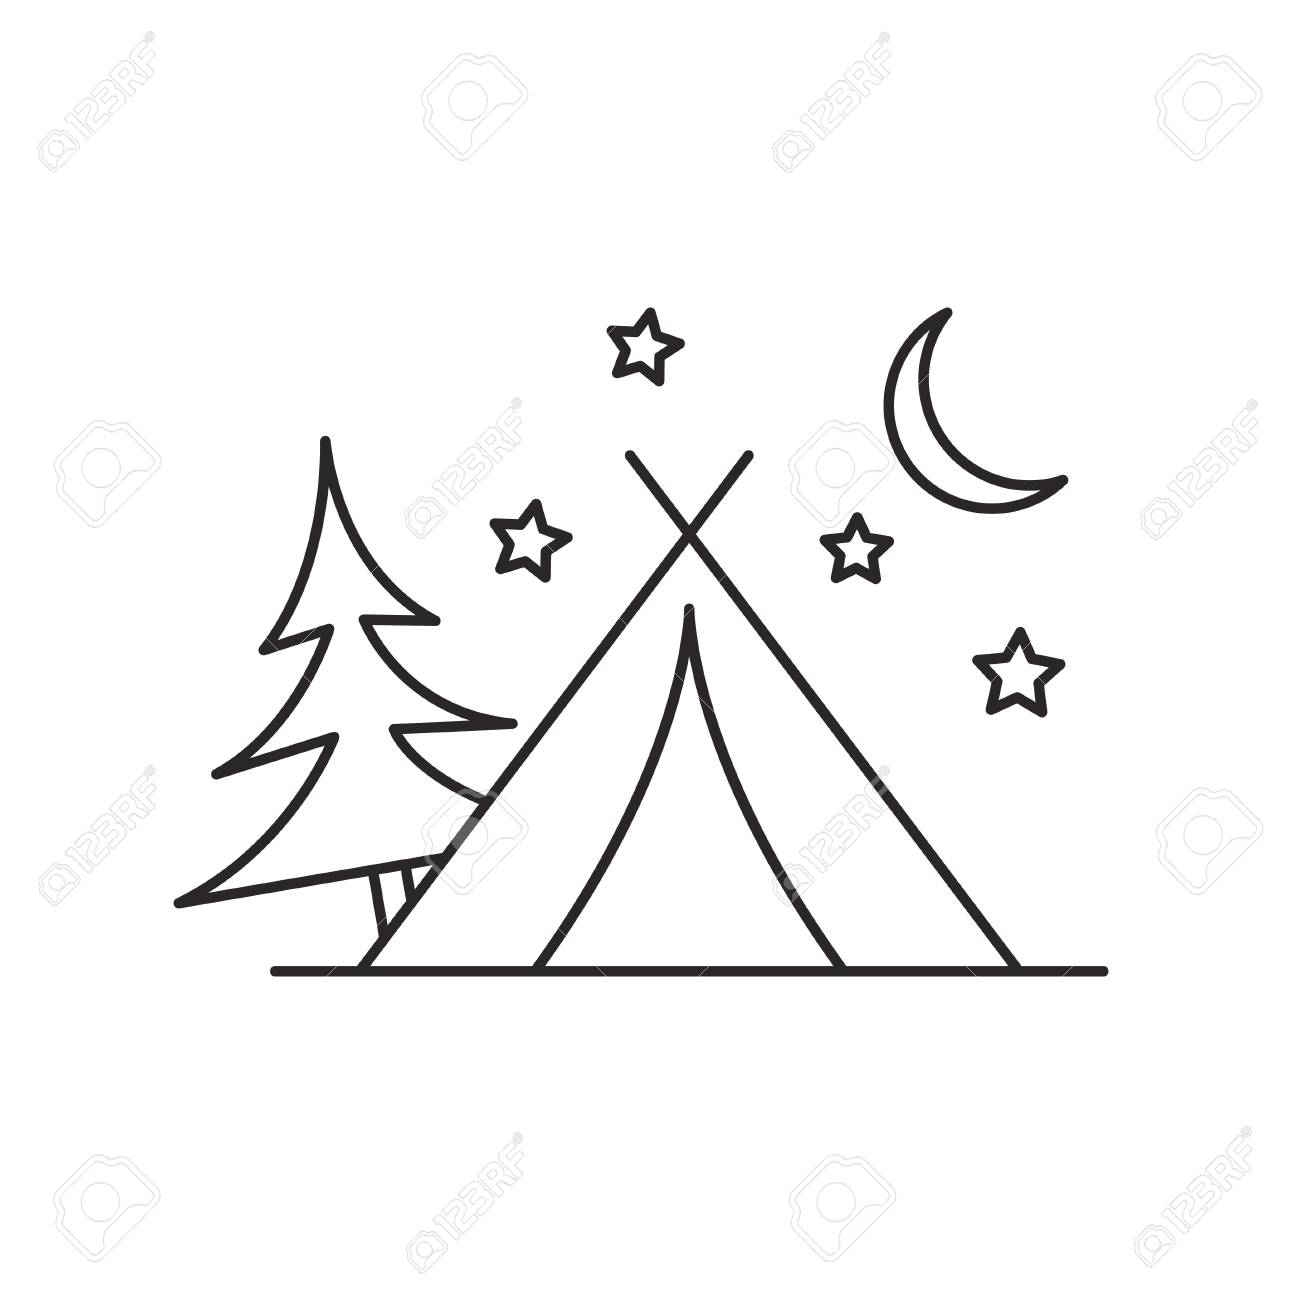 Tent Clipart Black And White - Camping Clip Art Black And White, Cliparts &  Cartoons - Jing.fm